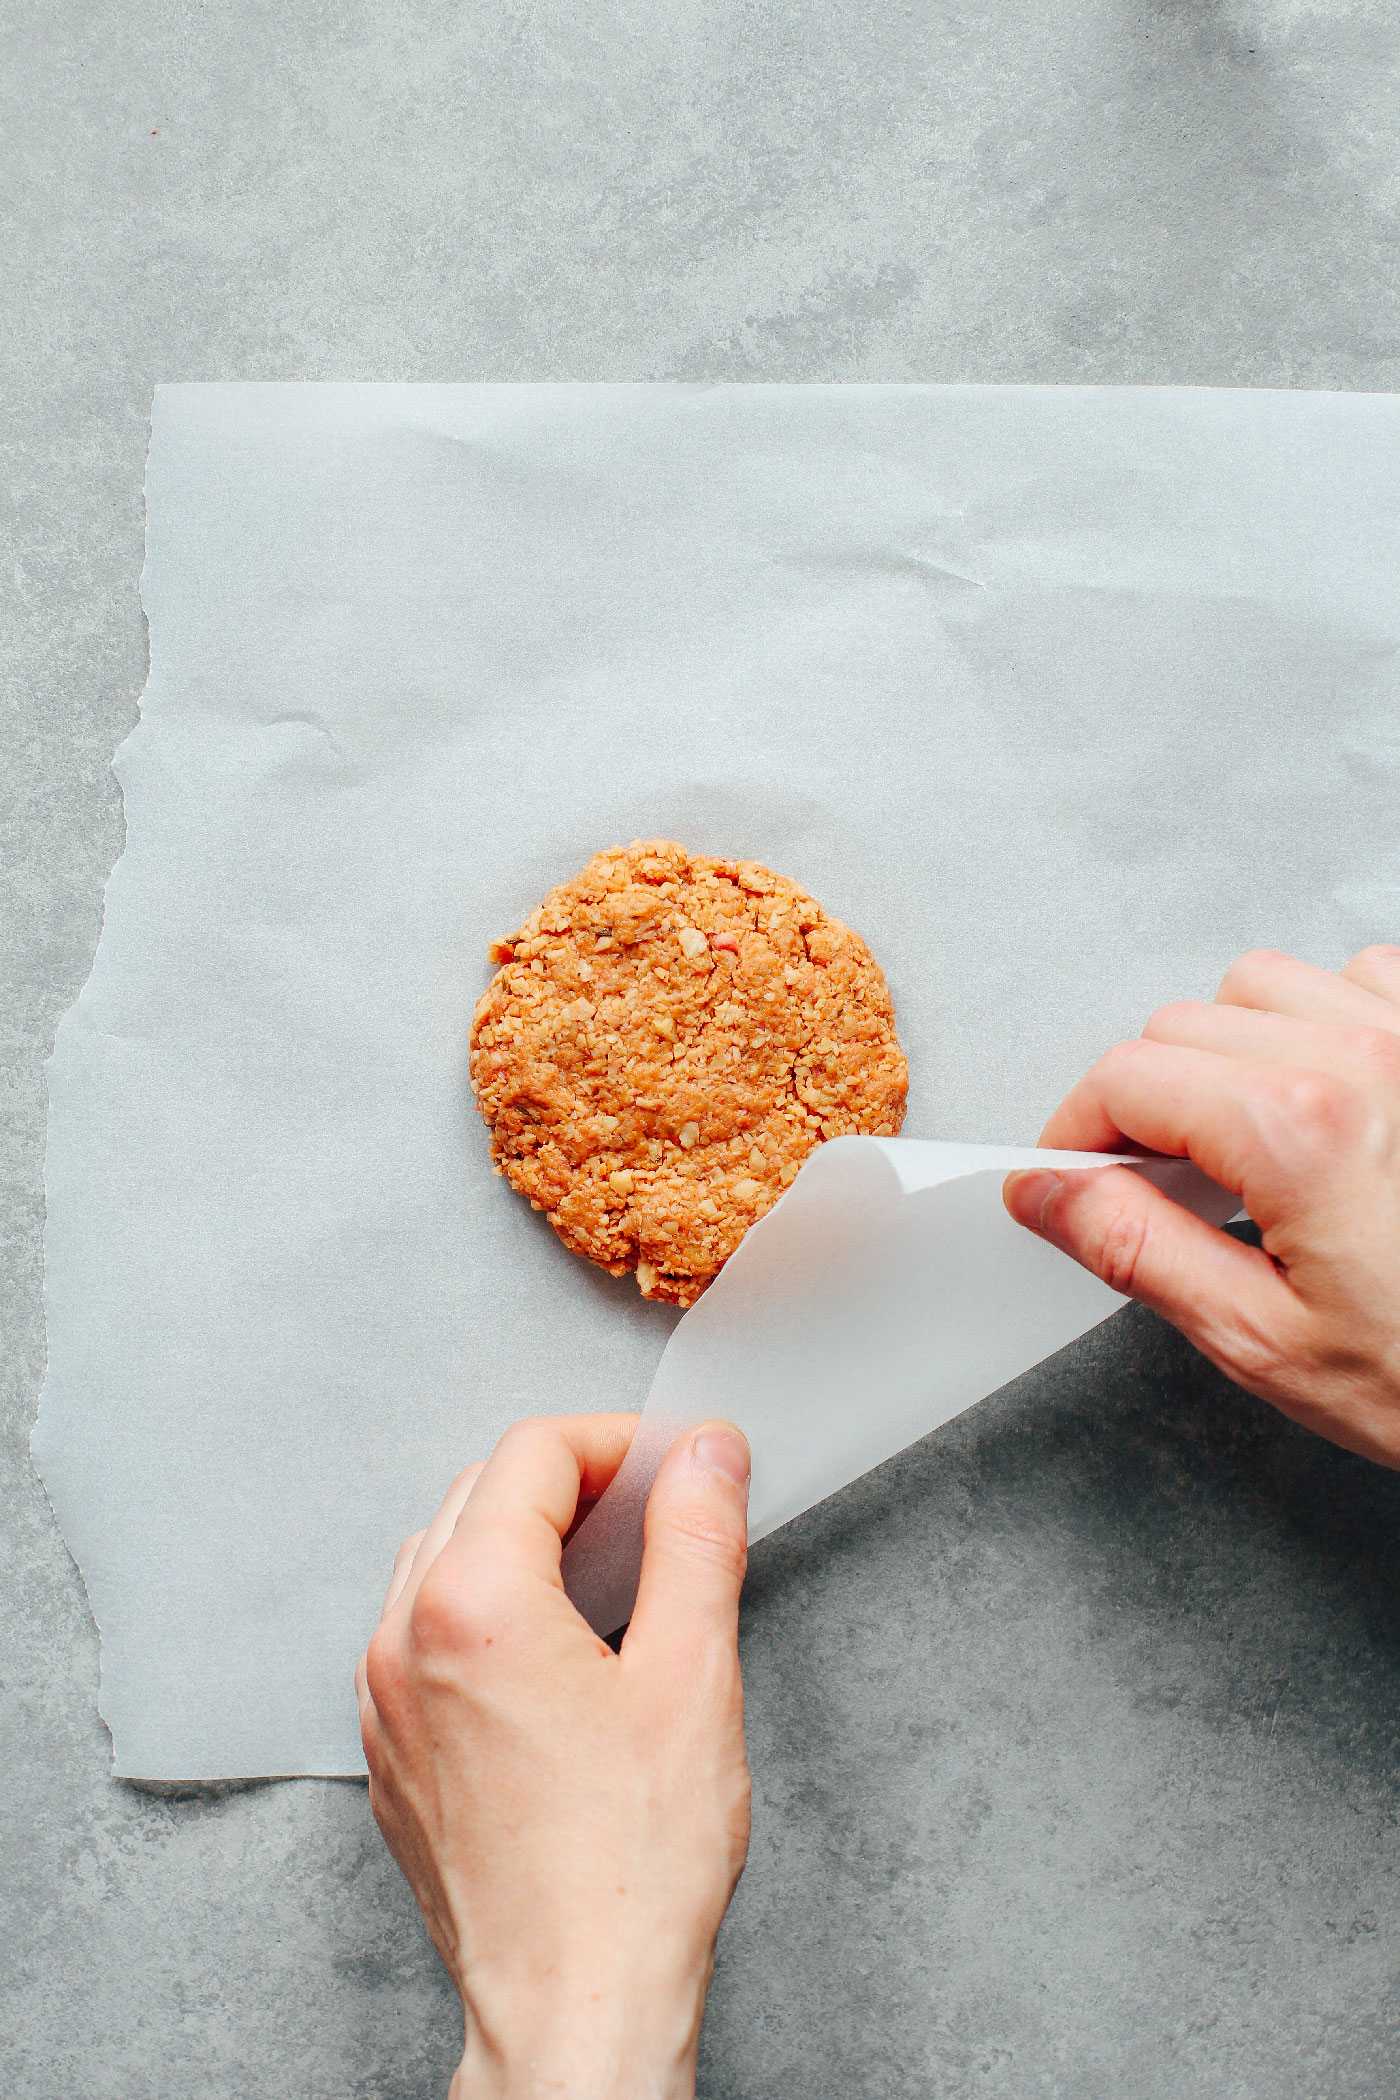 Wrapping high-protein vegan burgers in parchment paper.